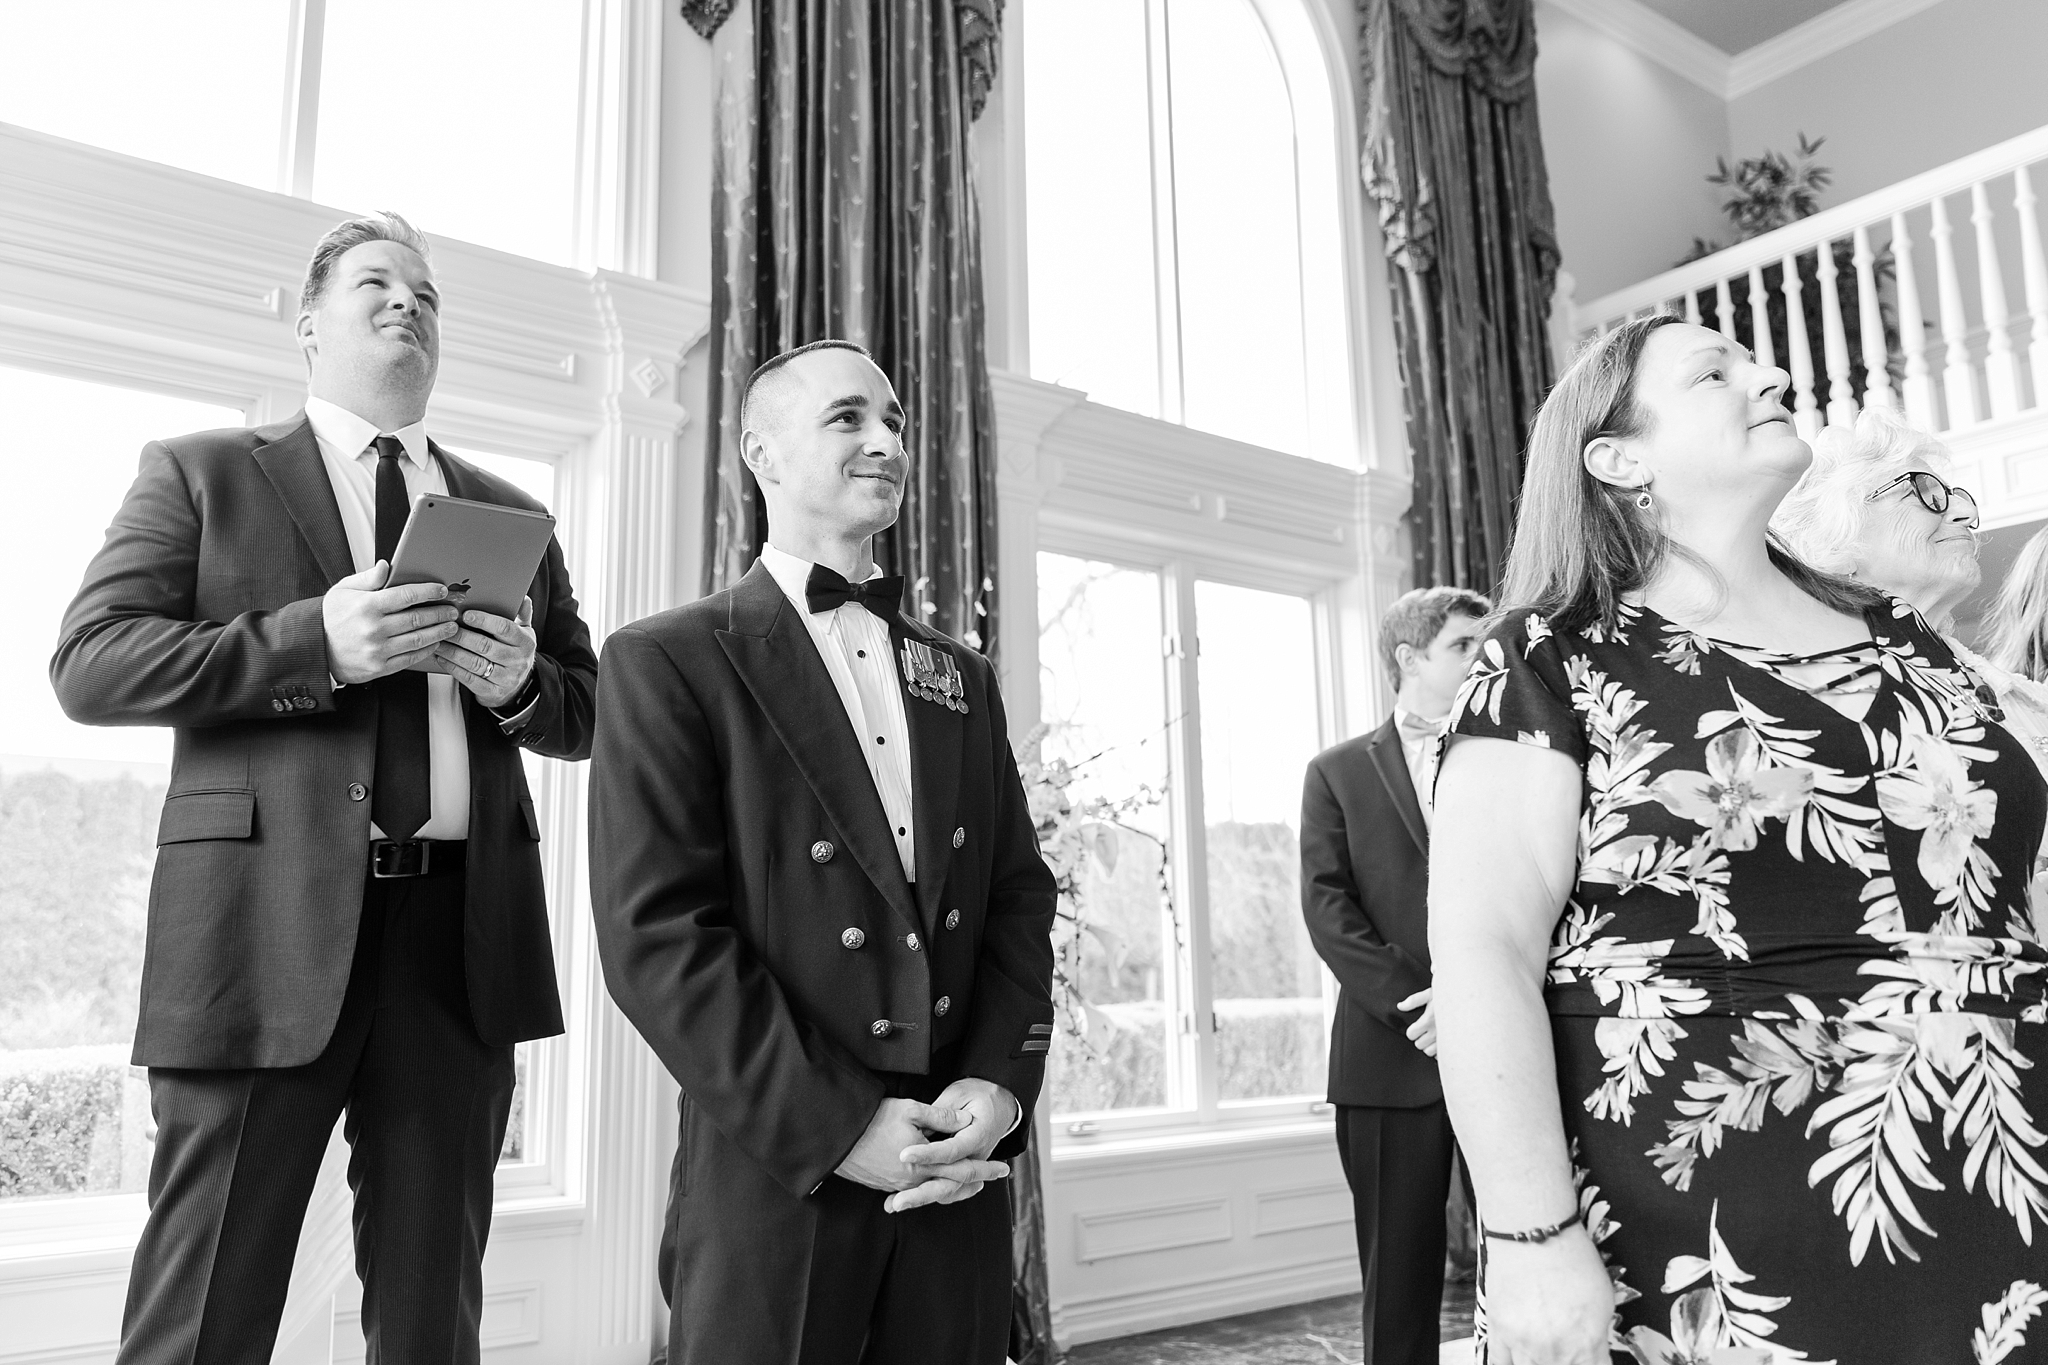 romantic-artful-candid-wedding-photos-in-st-clair-shores-at-the-white-house-wedding-chapel-by-courtney-carolyn-photography_0025.jpg